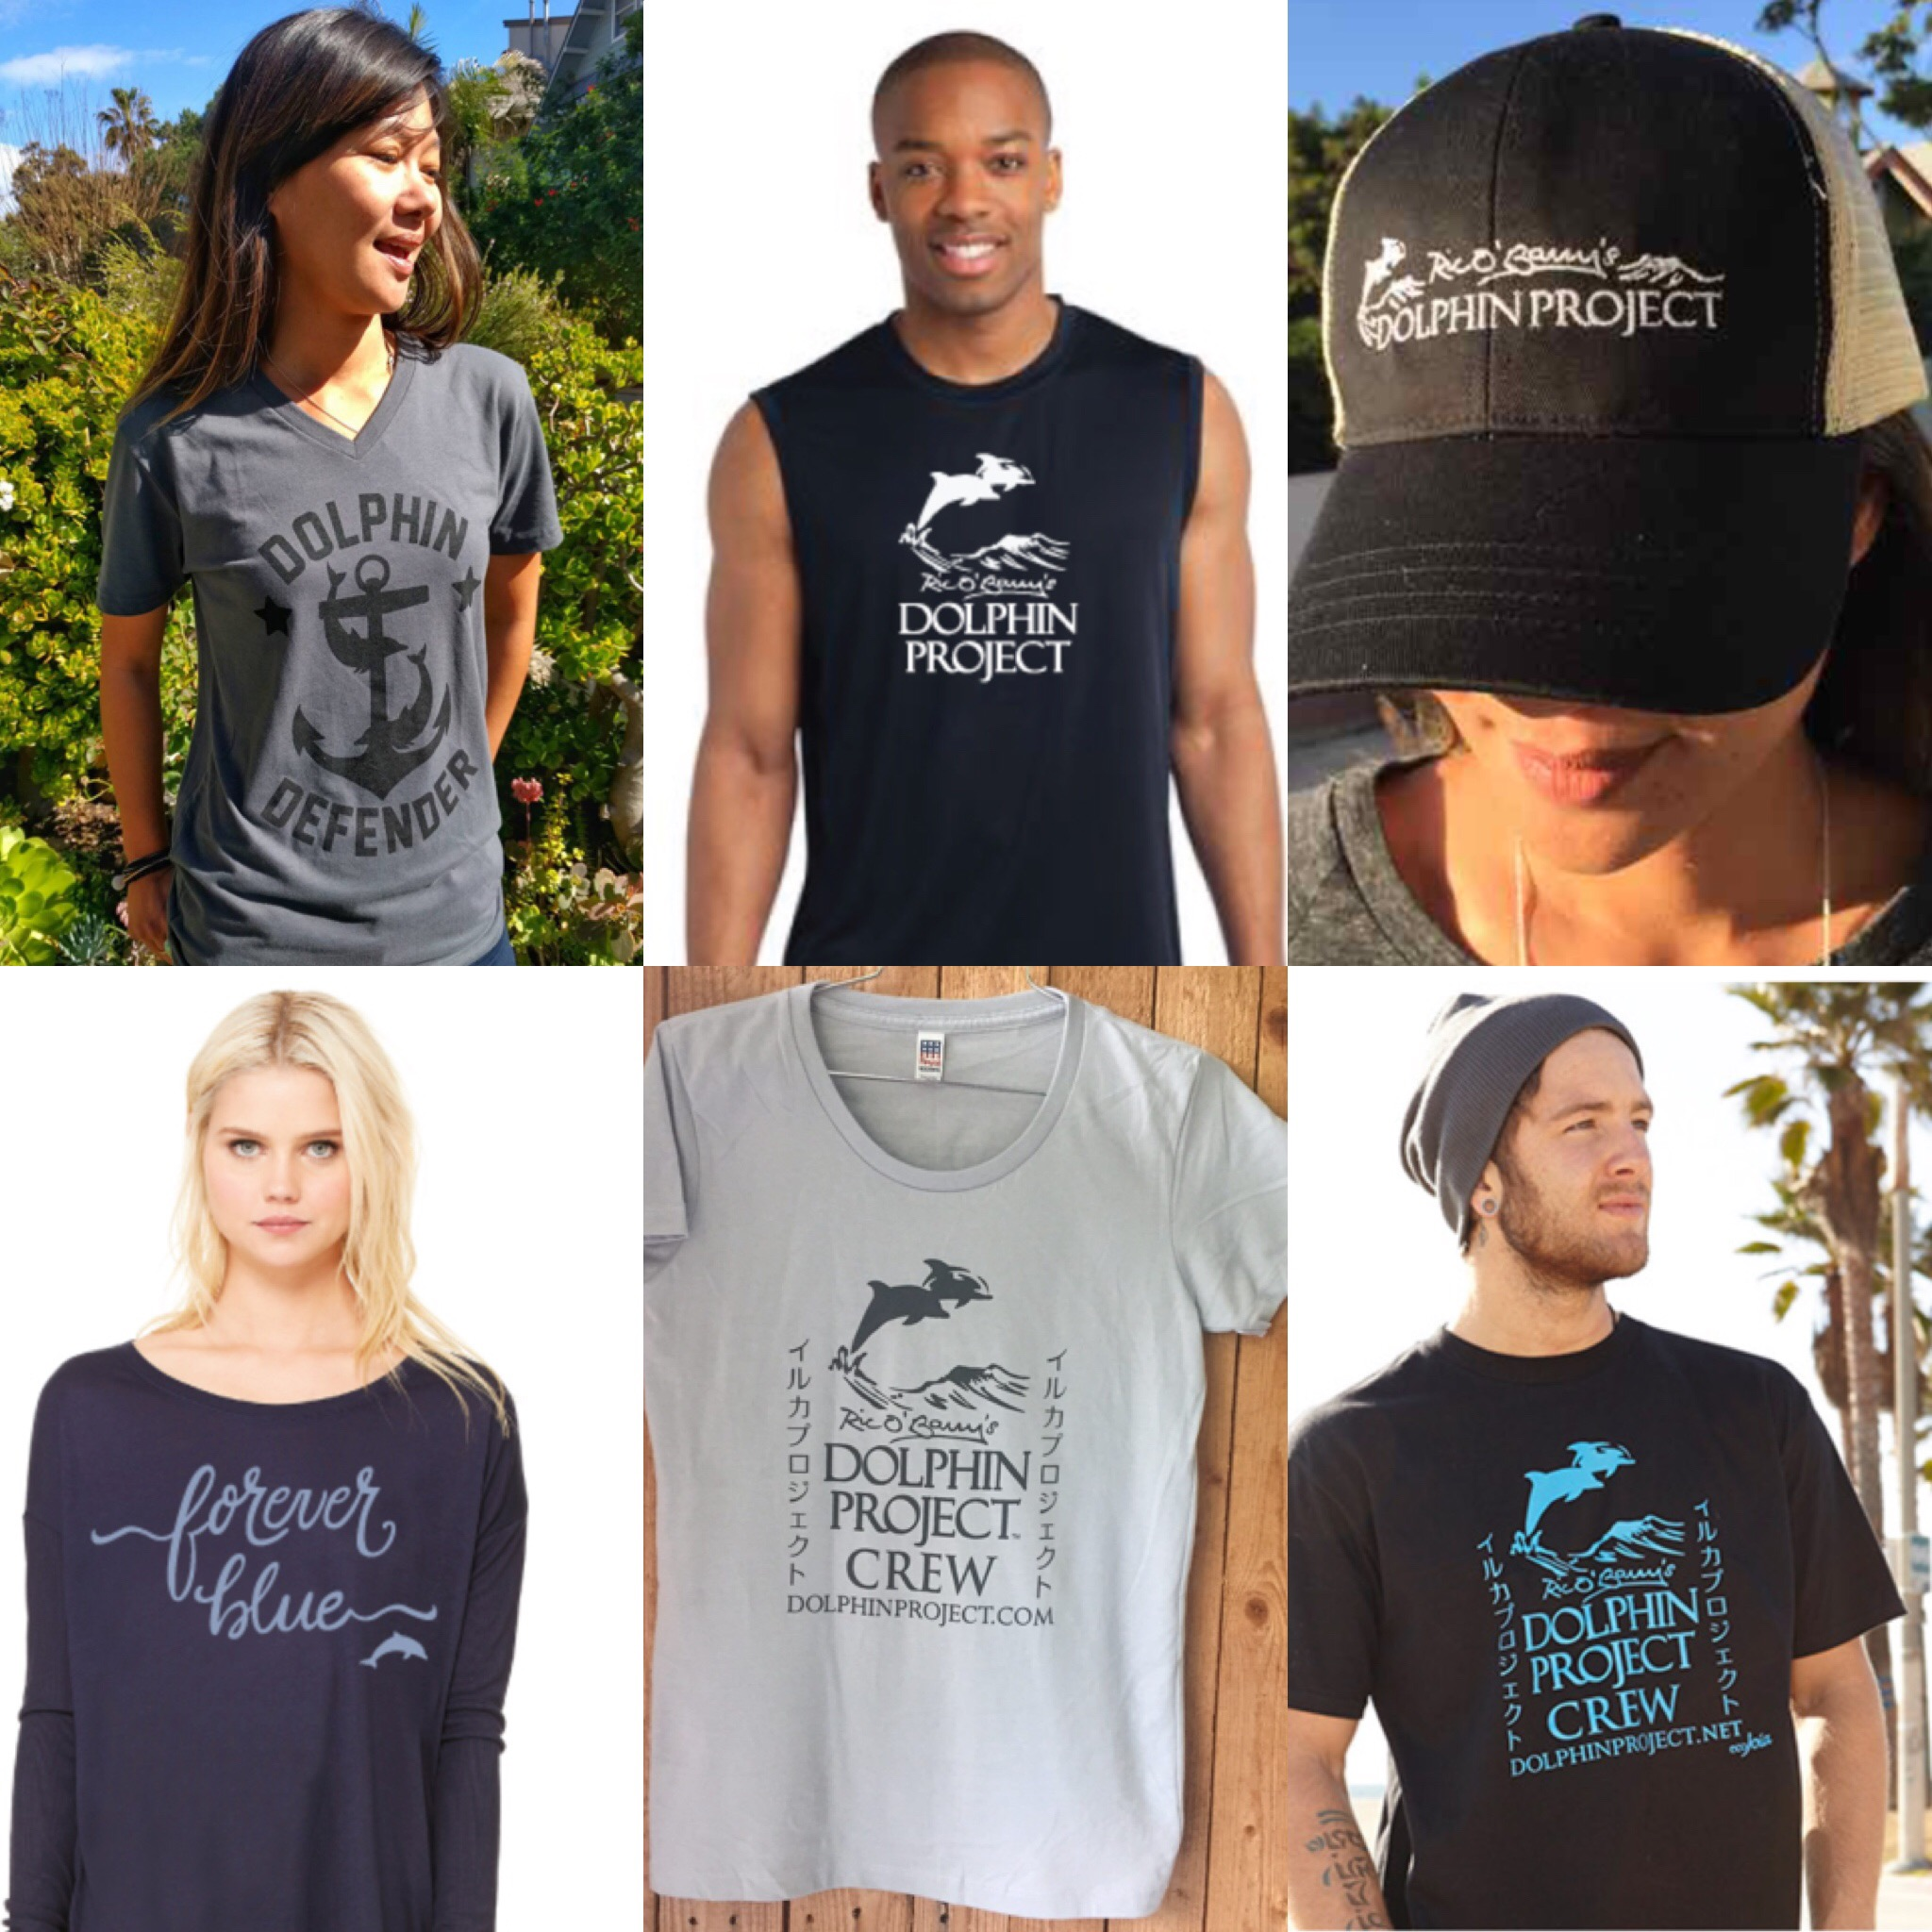 Wear your support for Dolphin Project and start a dialogue!